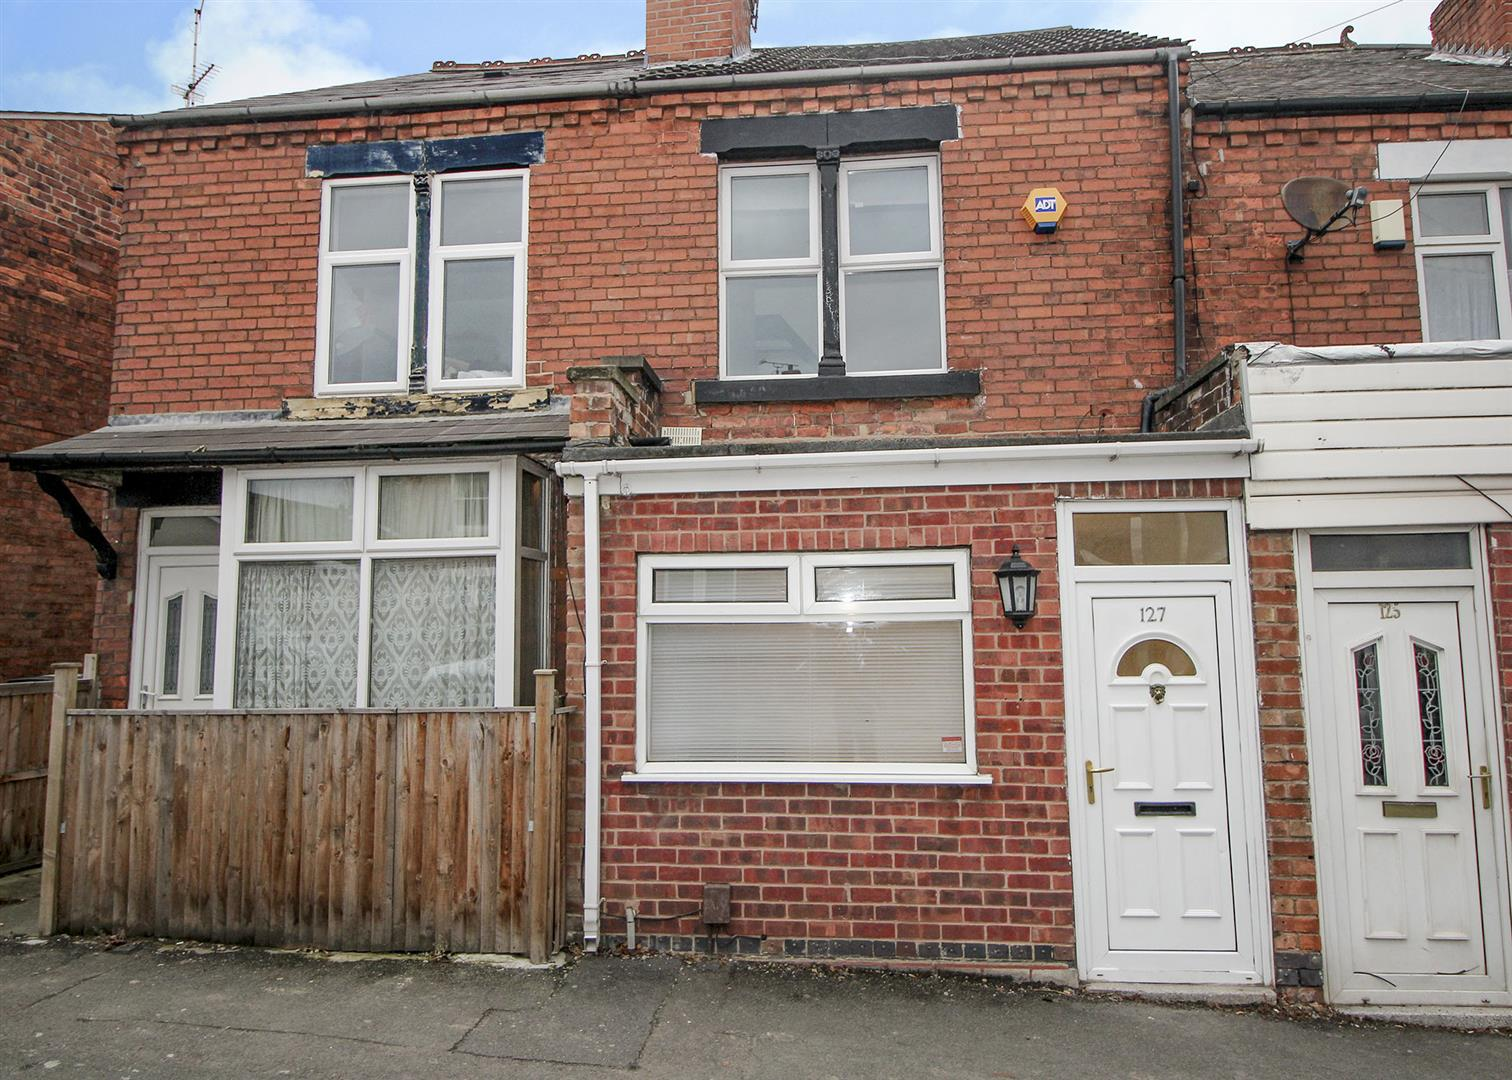 3 Bedrooms Terraced House for sale in Derby Road, Sandiacre, Nottingham